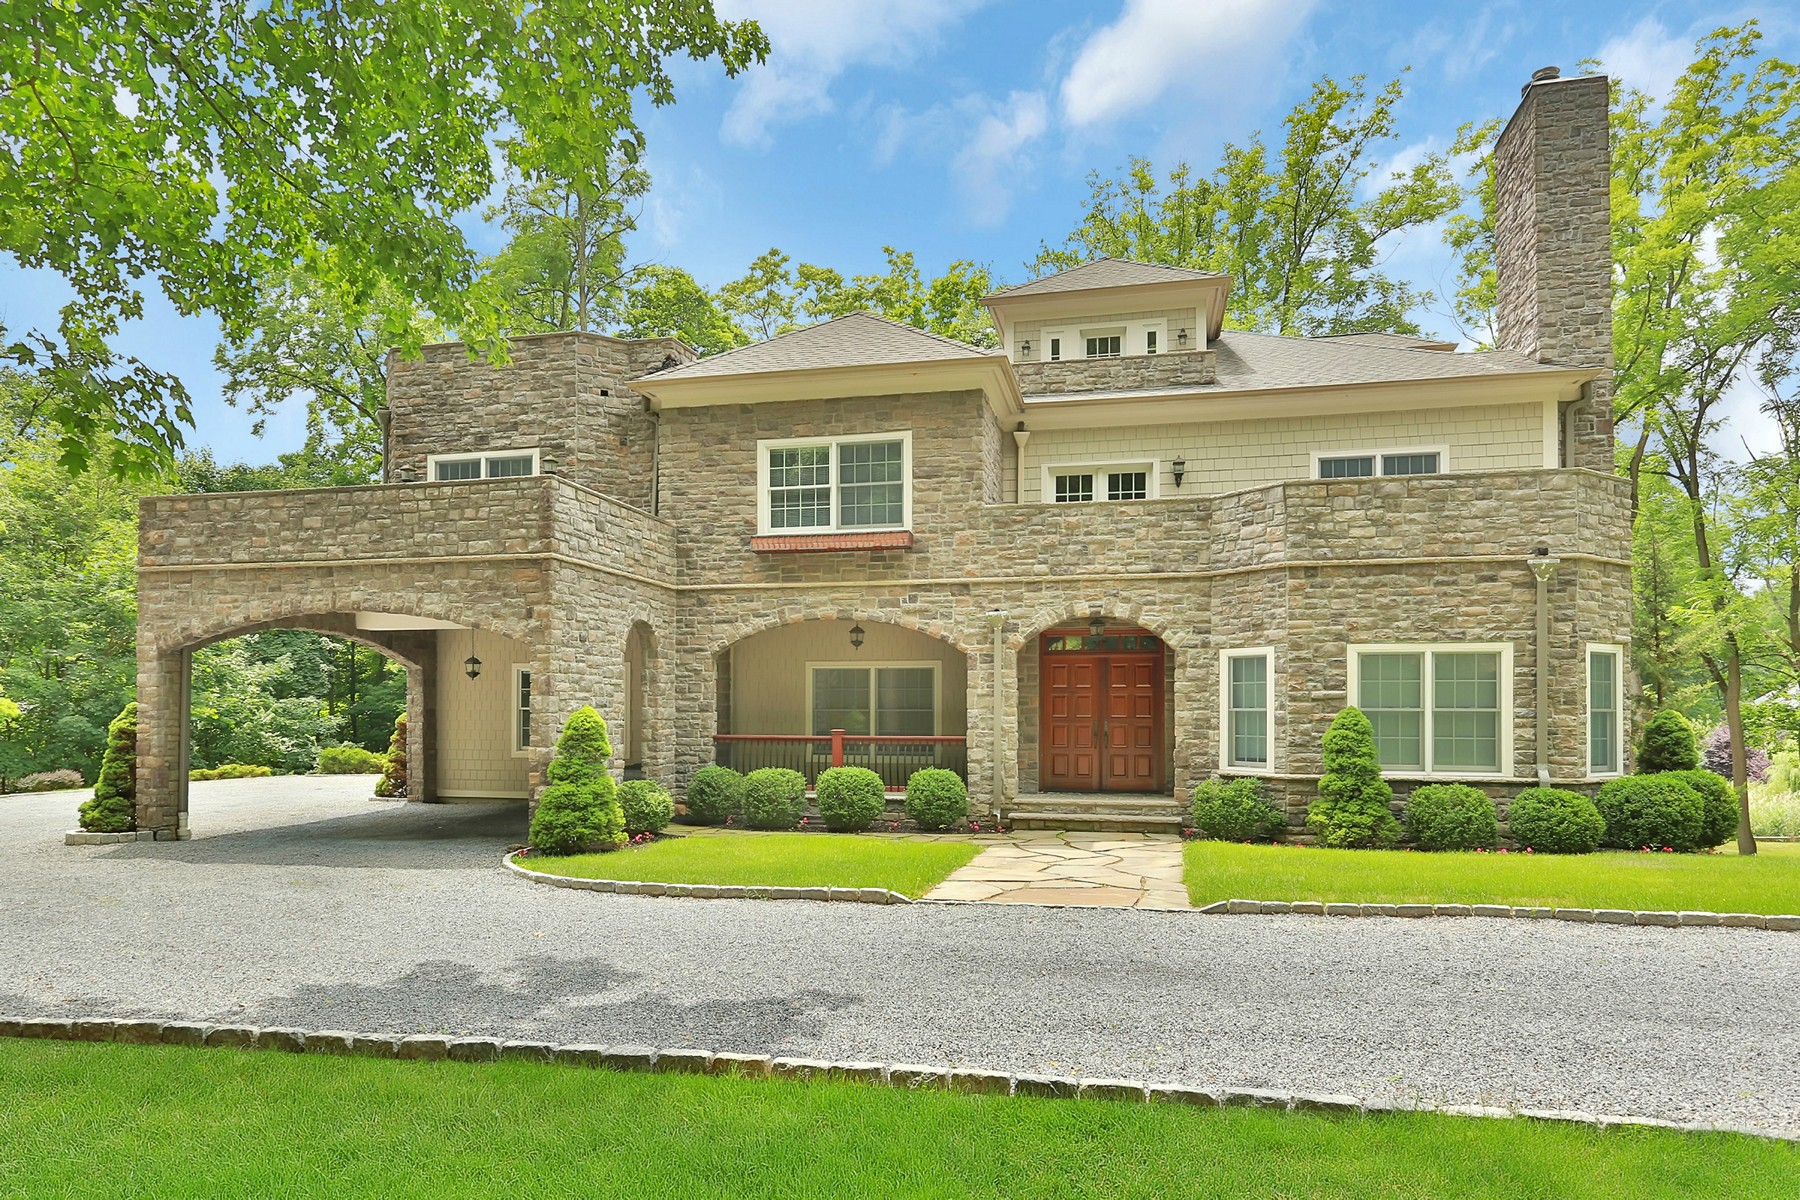 Single Family Home for Rent at Extraordinary and Gracious 100 North Old Post Rd Croton On Hudson, New York 10520 United States